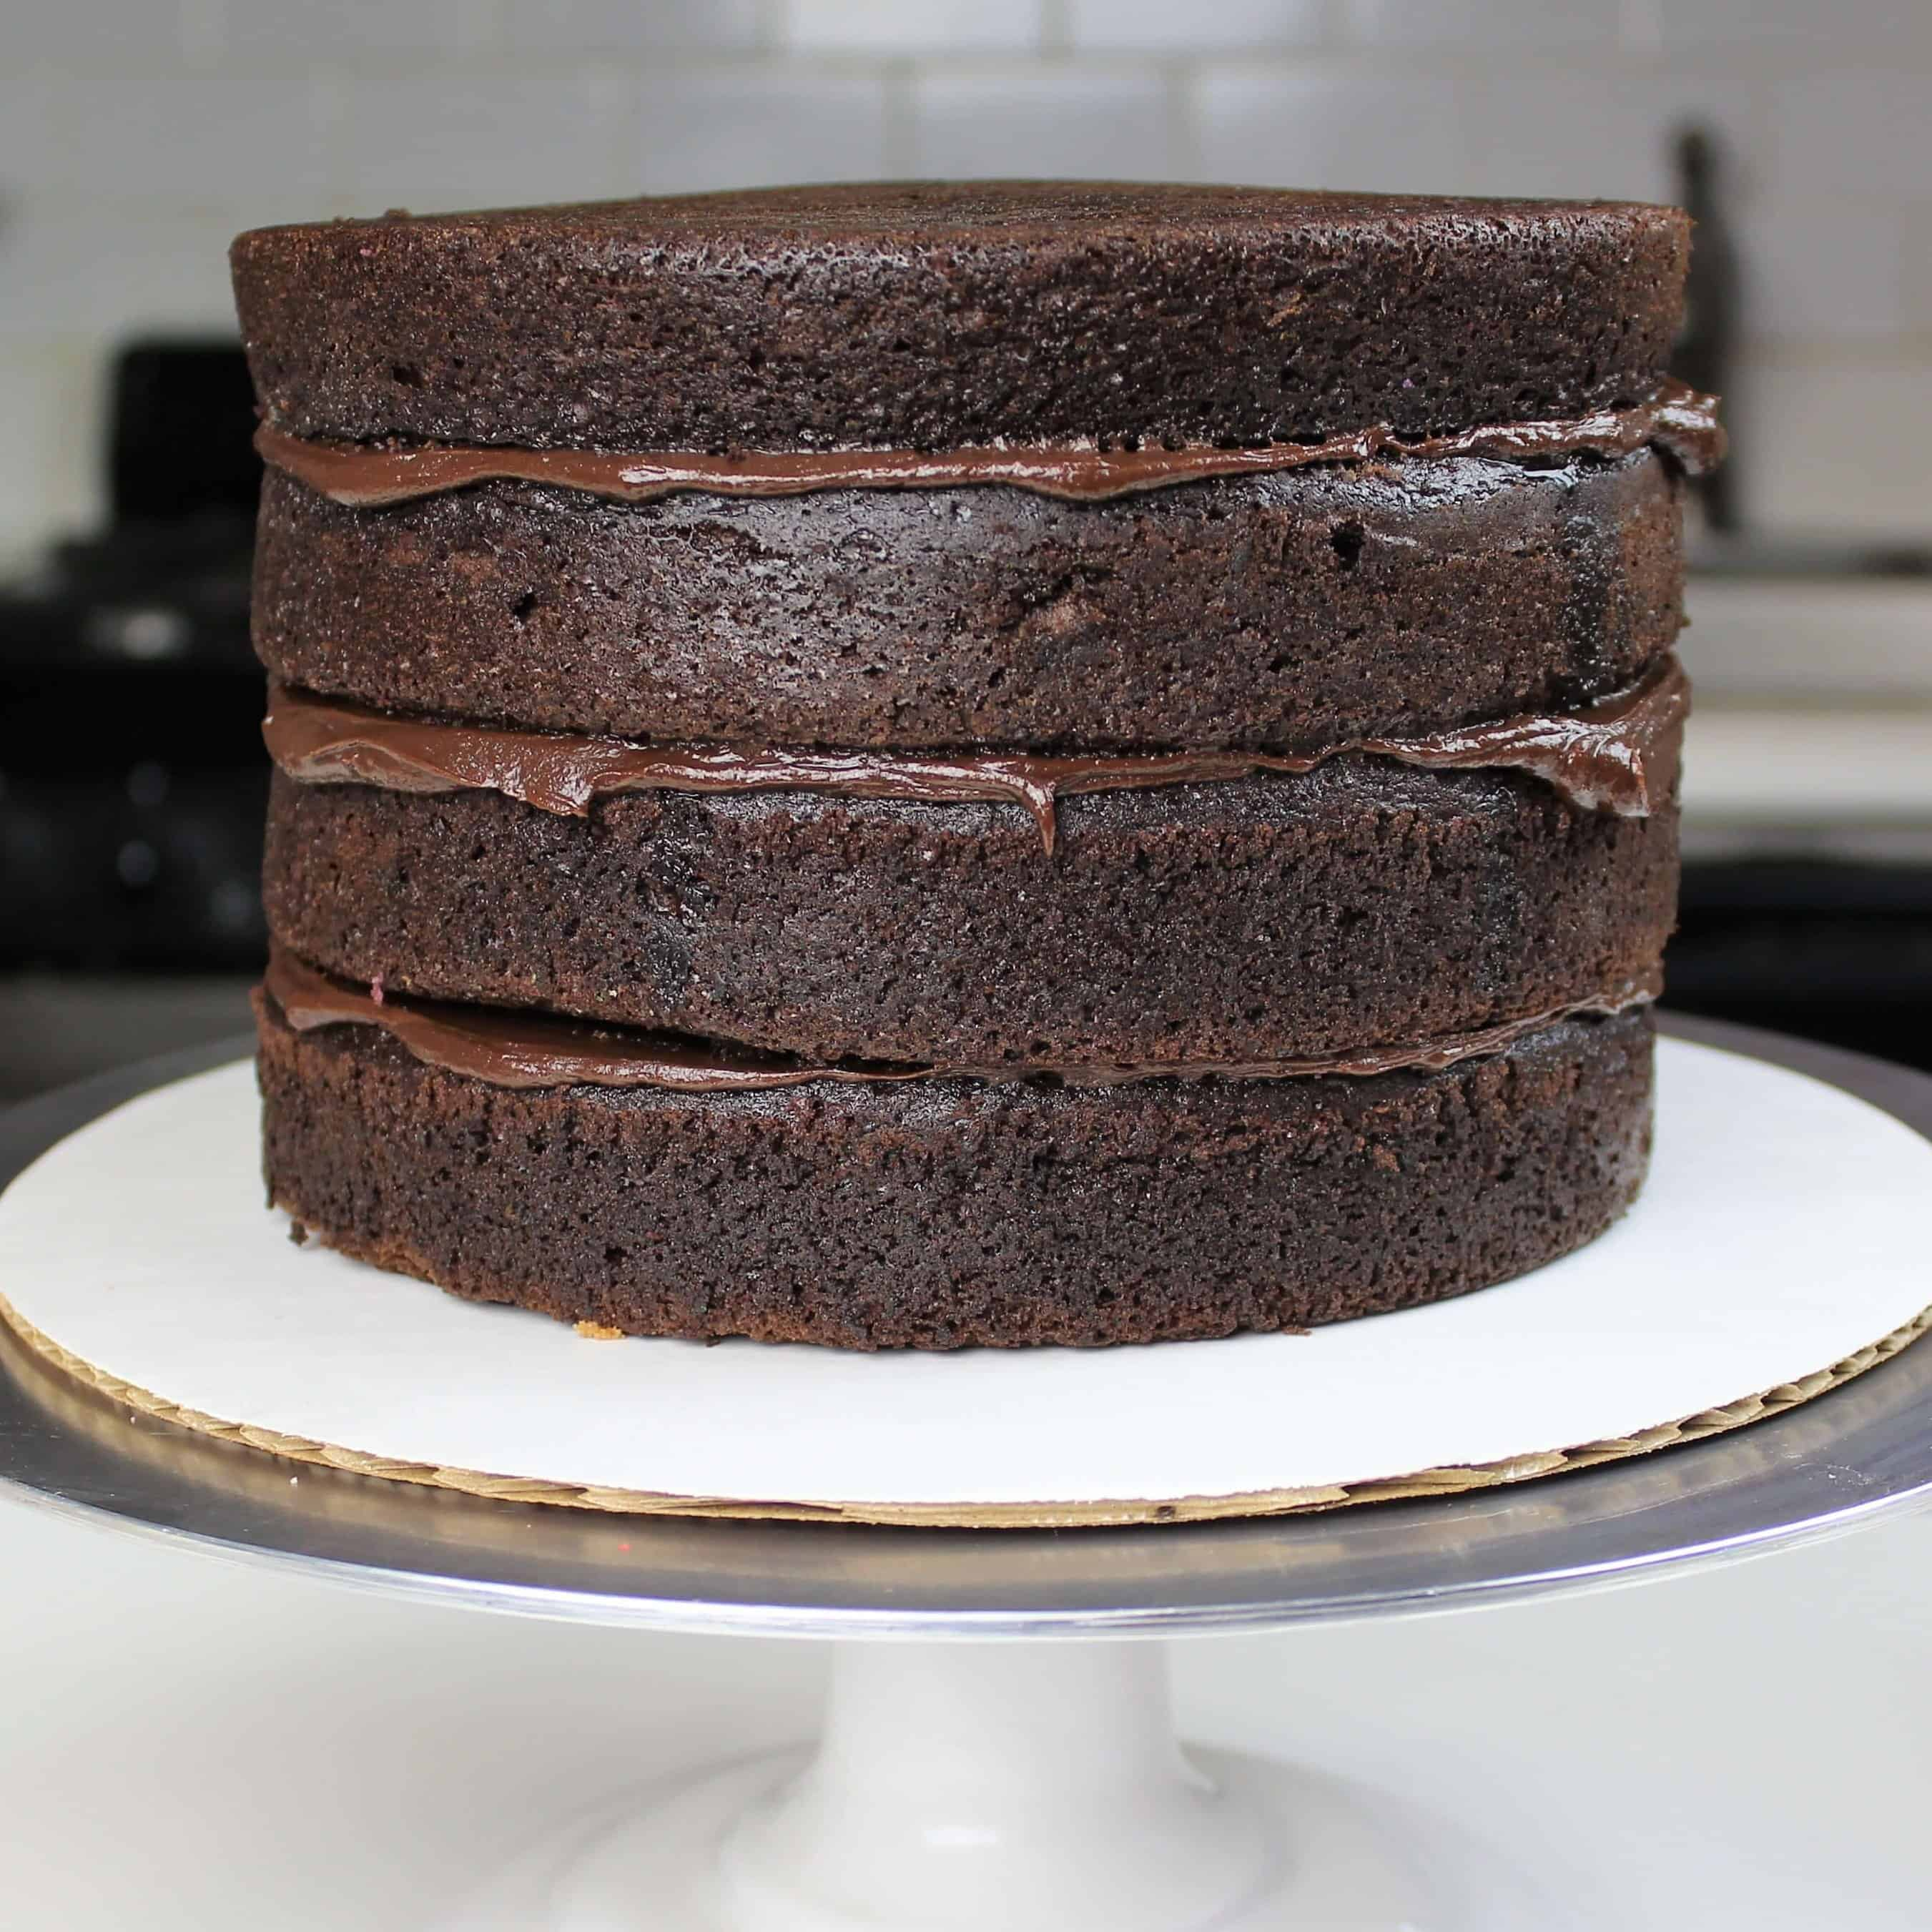 Photo of chocolate sponge cake recipe